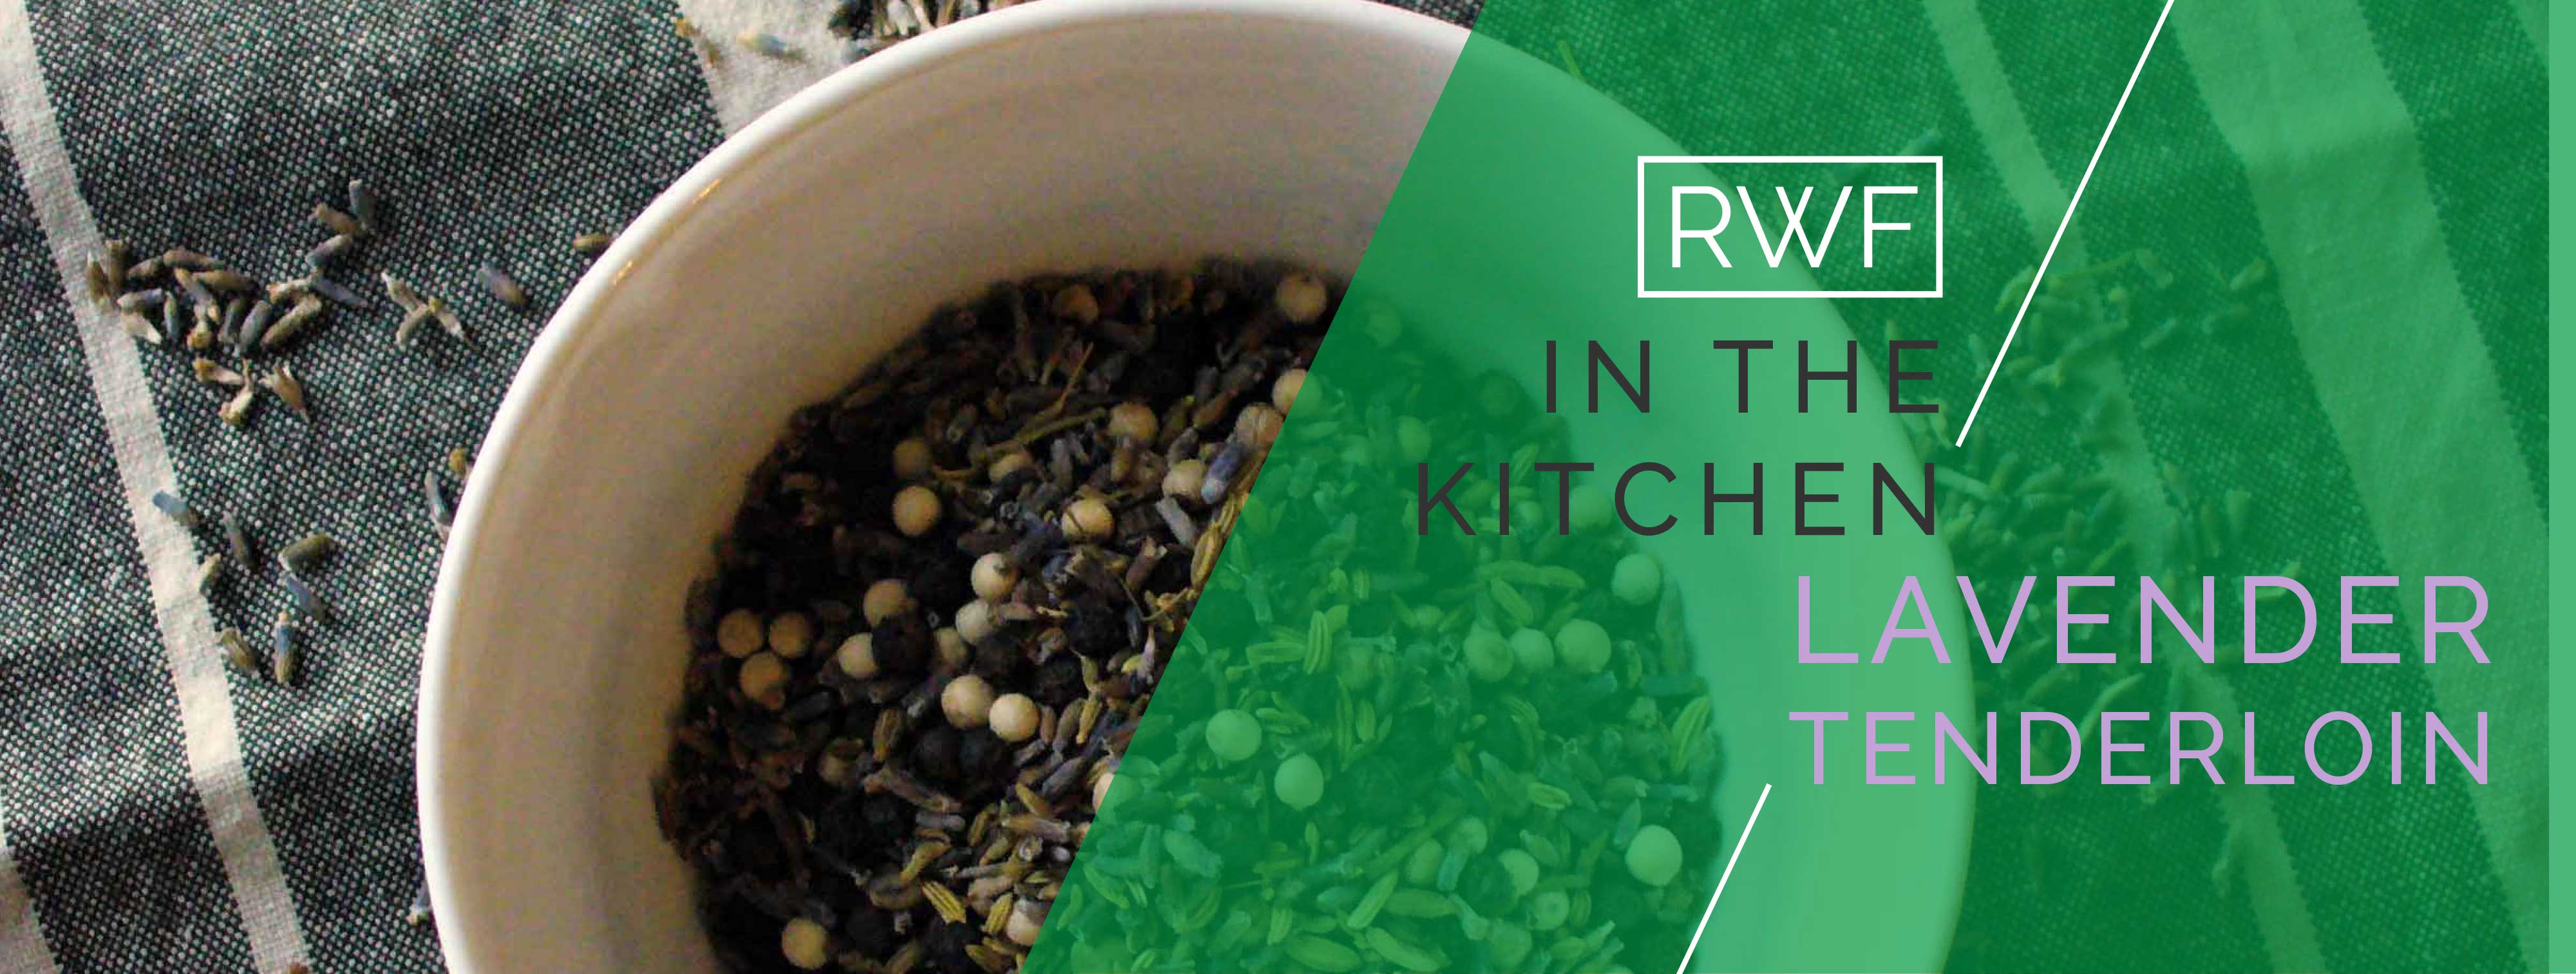 Rainwater Farm In the Kitchen Lavender Tenderloin Recipe